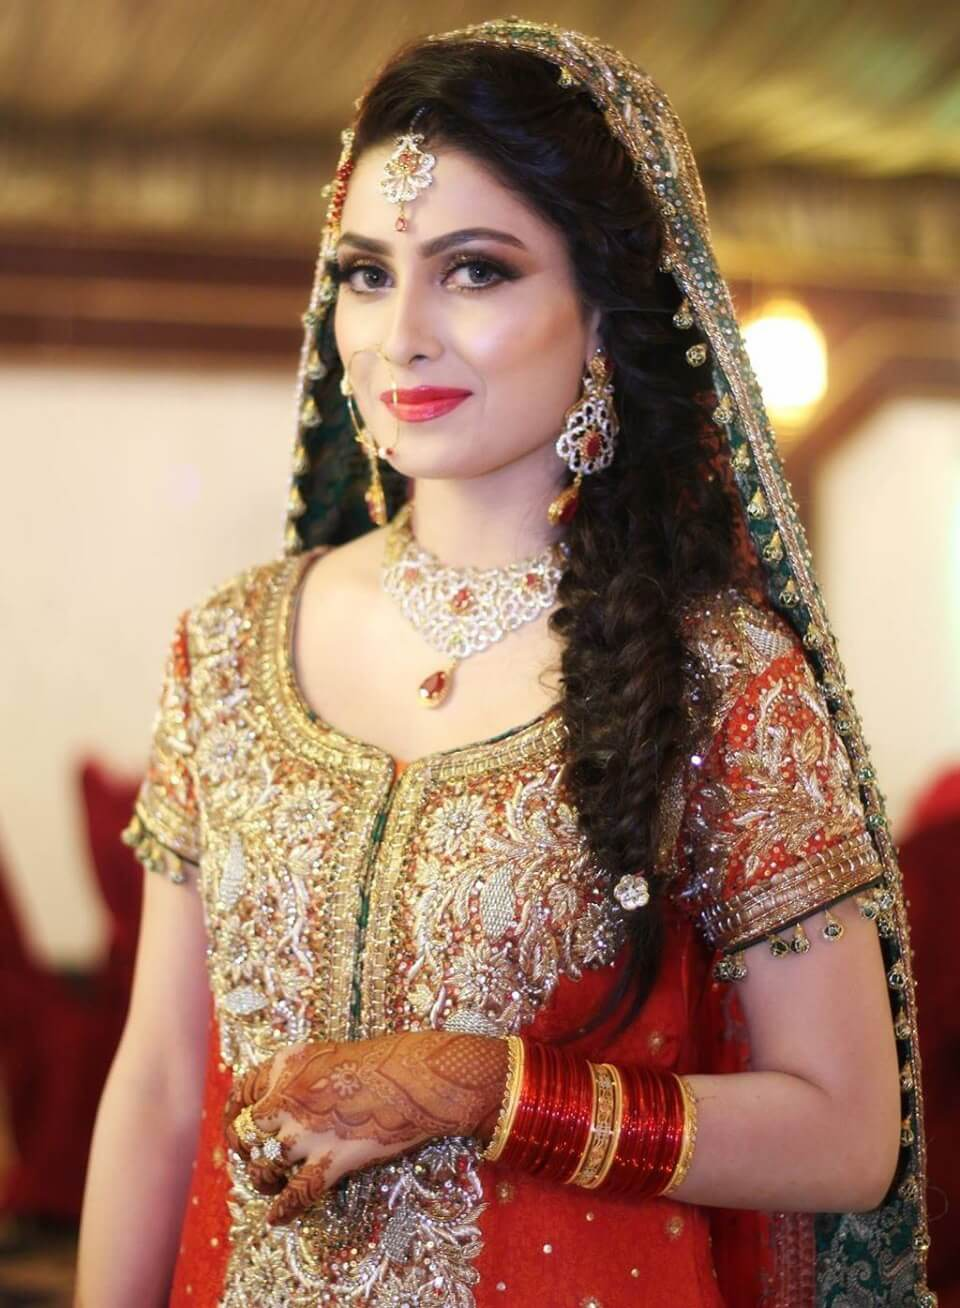 hairstyles for mehndi party function » fashion tips